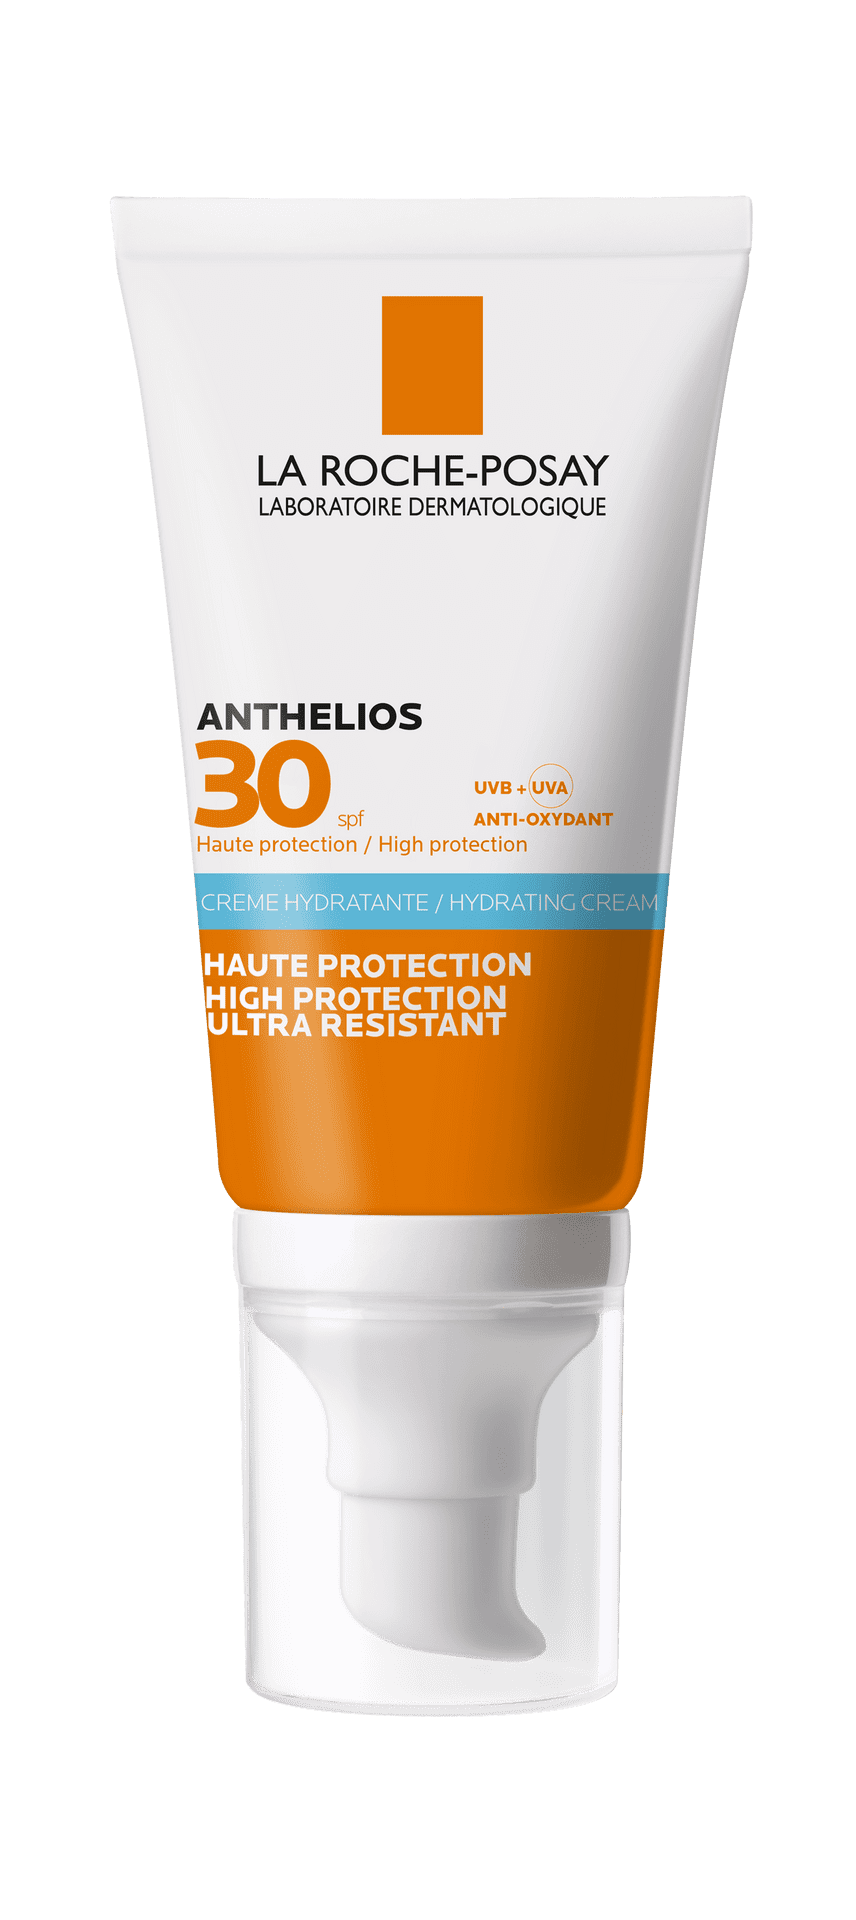 La Roche Posay ProductPage Sun Anthelios Ultra Face Cream Spf30 50ml 3